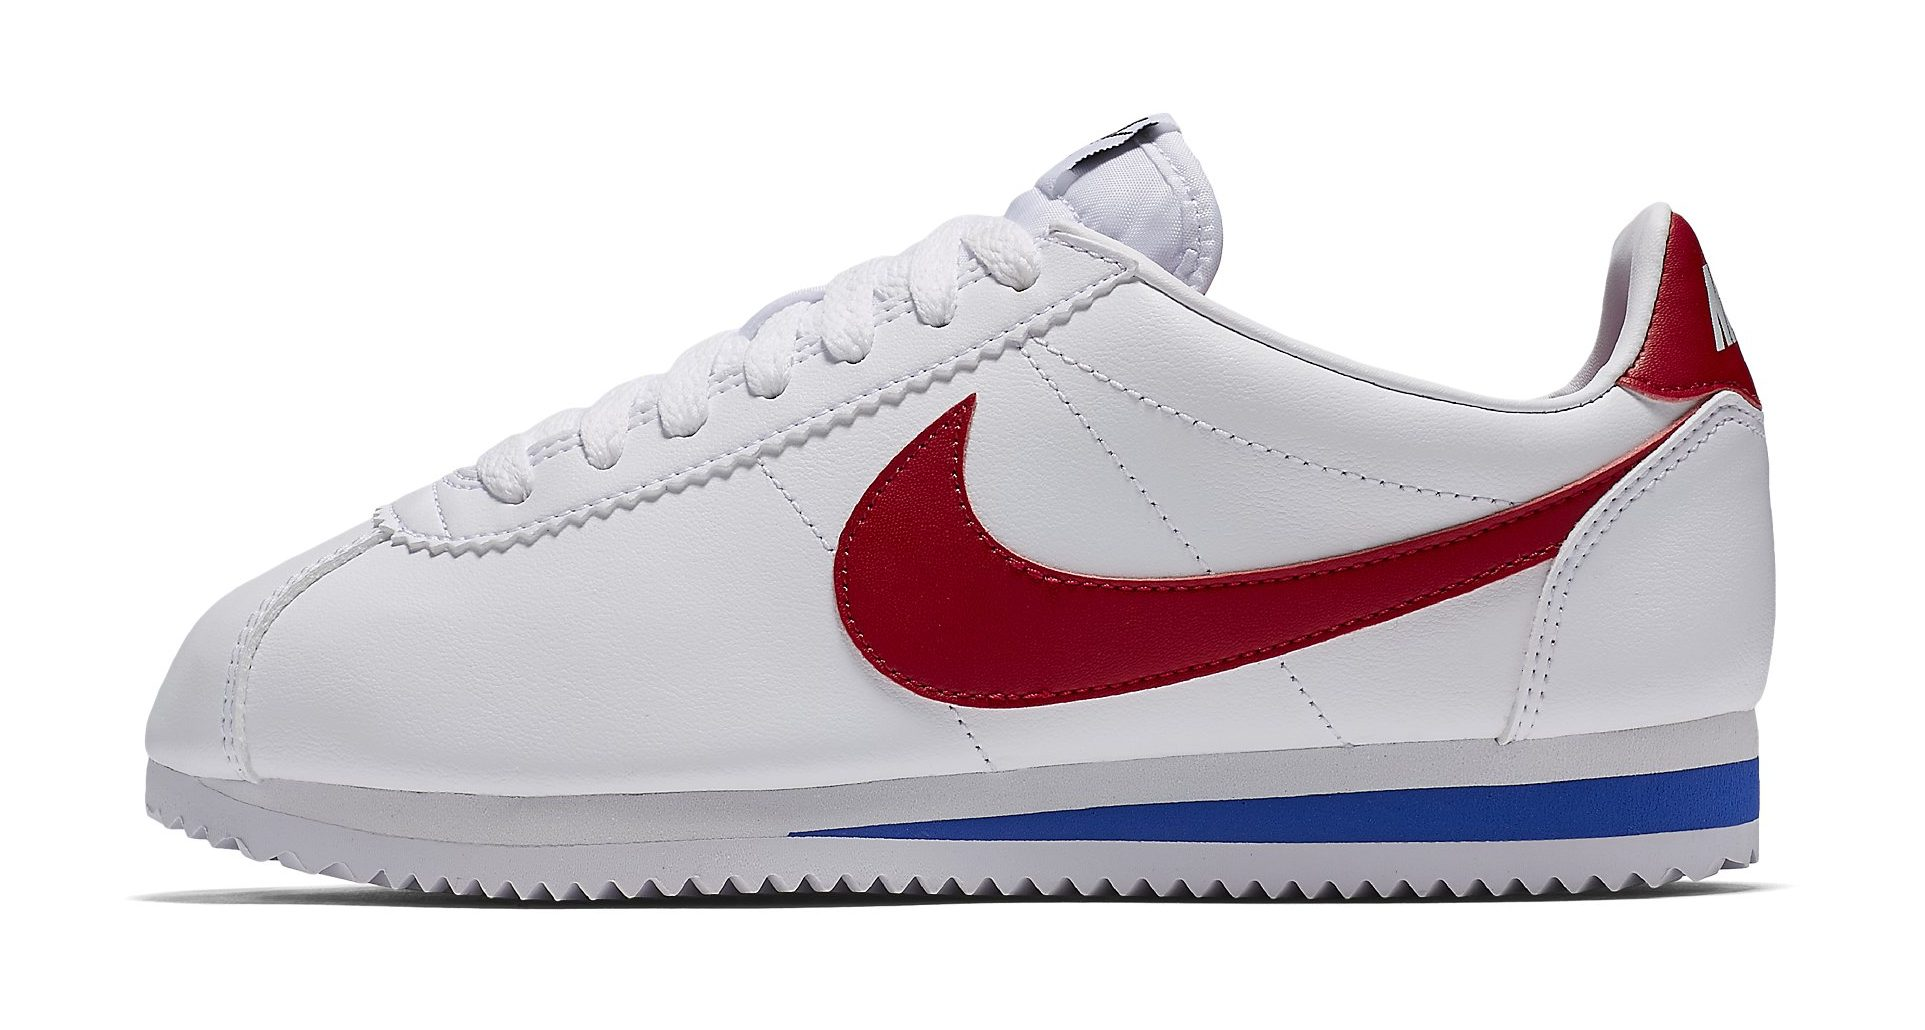 Best Red, White and Blue Sneakers for